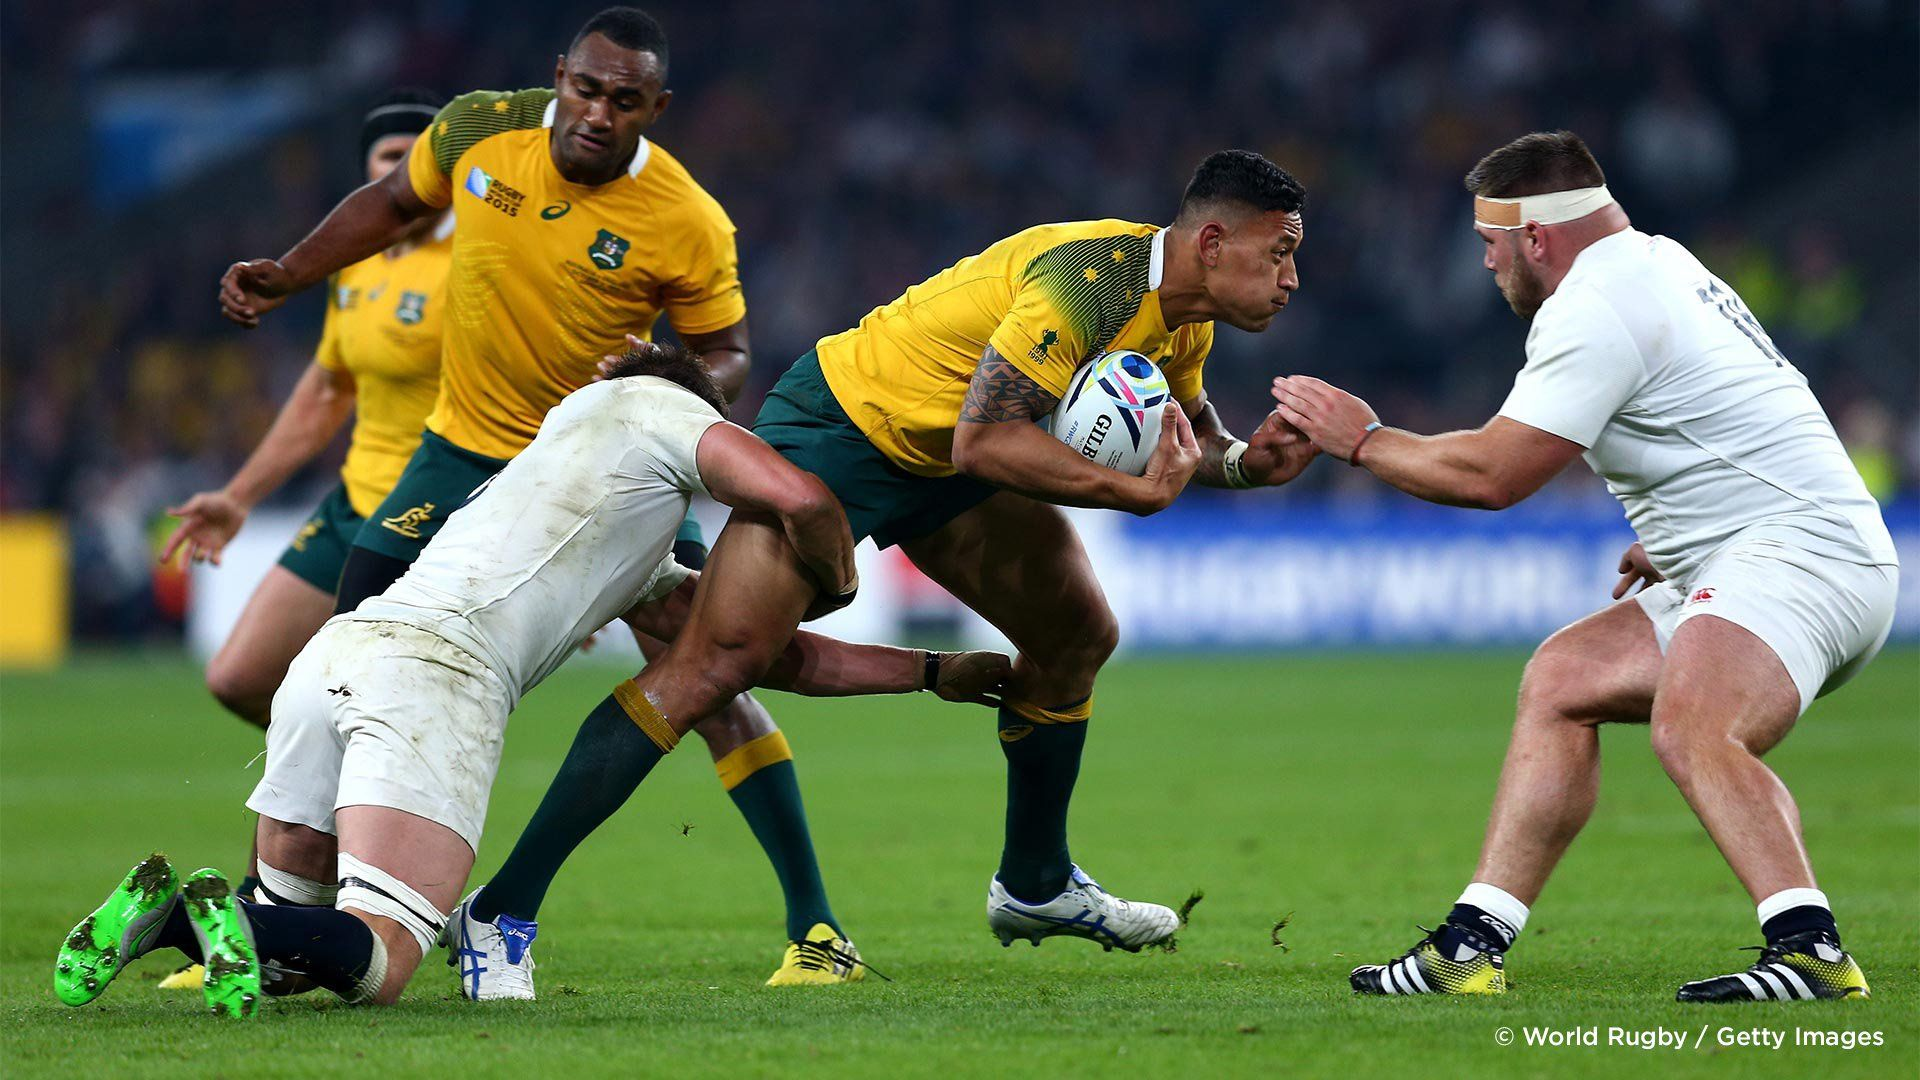 Players pictured on the point of a tackle in a match between England and Australia in the 2015 Rugby World Cup. Photo by Steve Bardens.